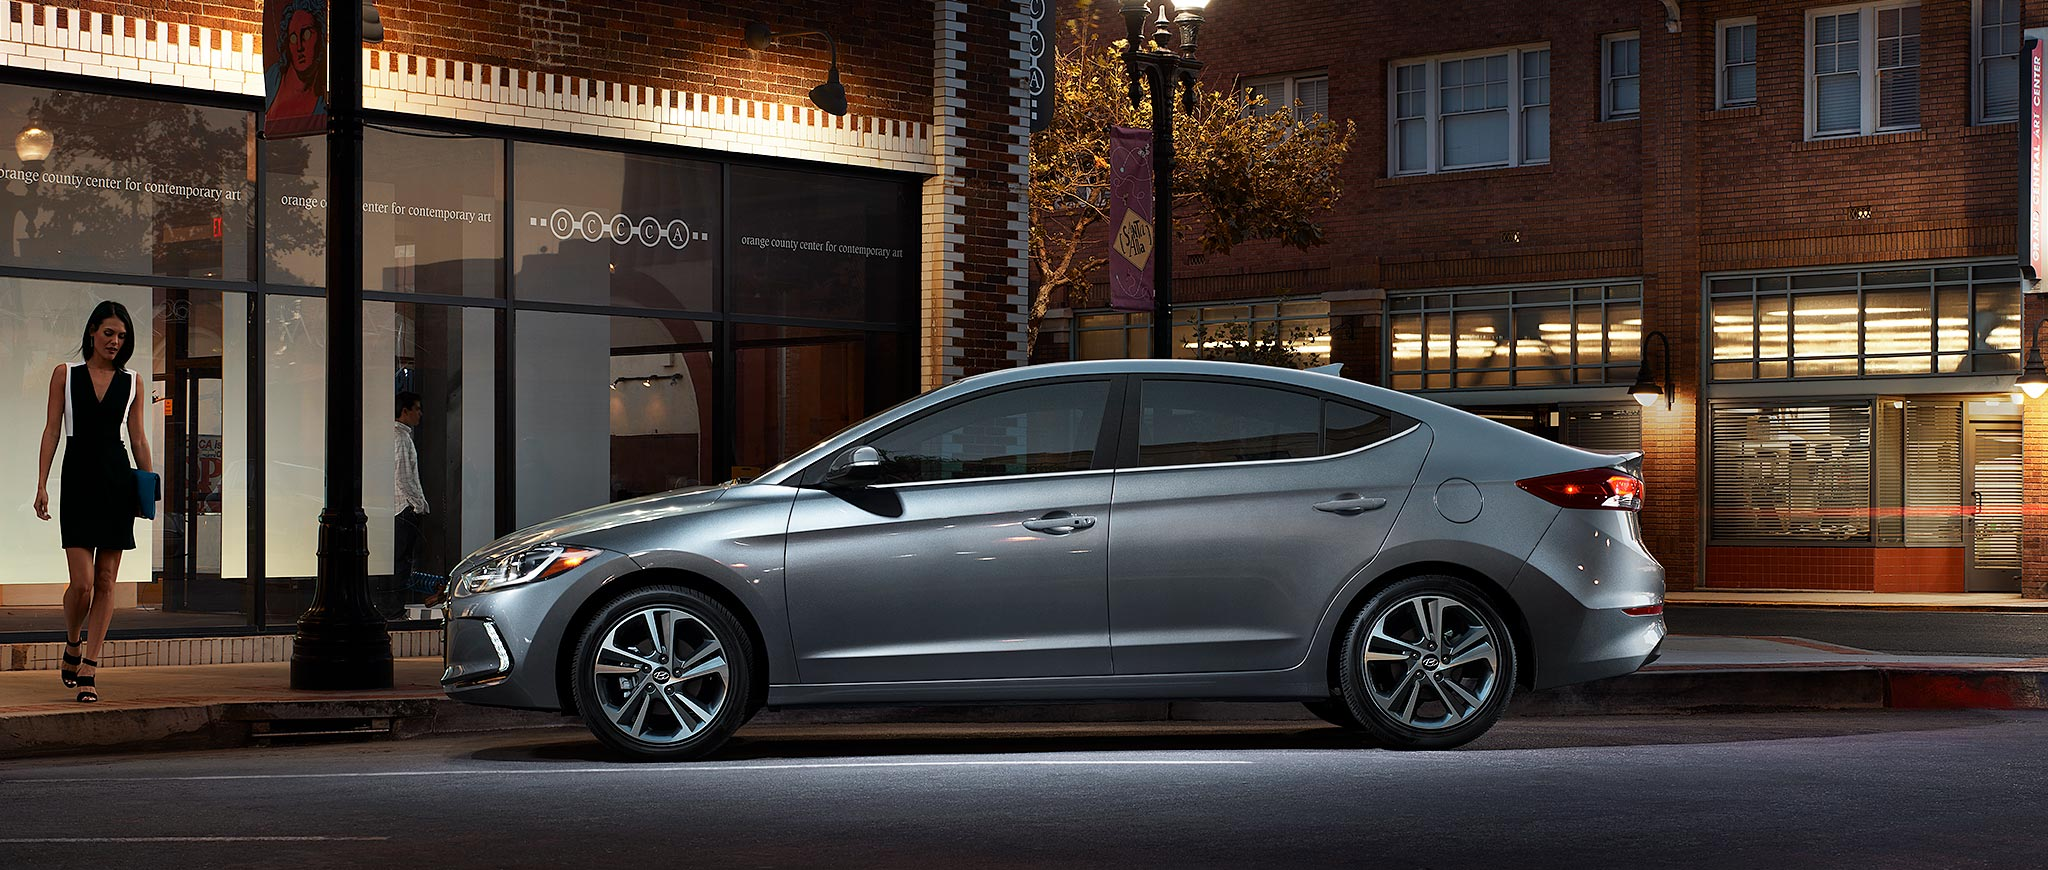 New Hyundai Elantra Features Inventory Indianapolis In